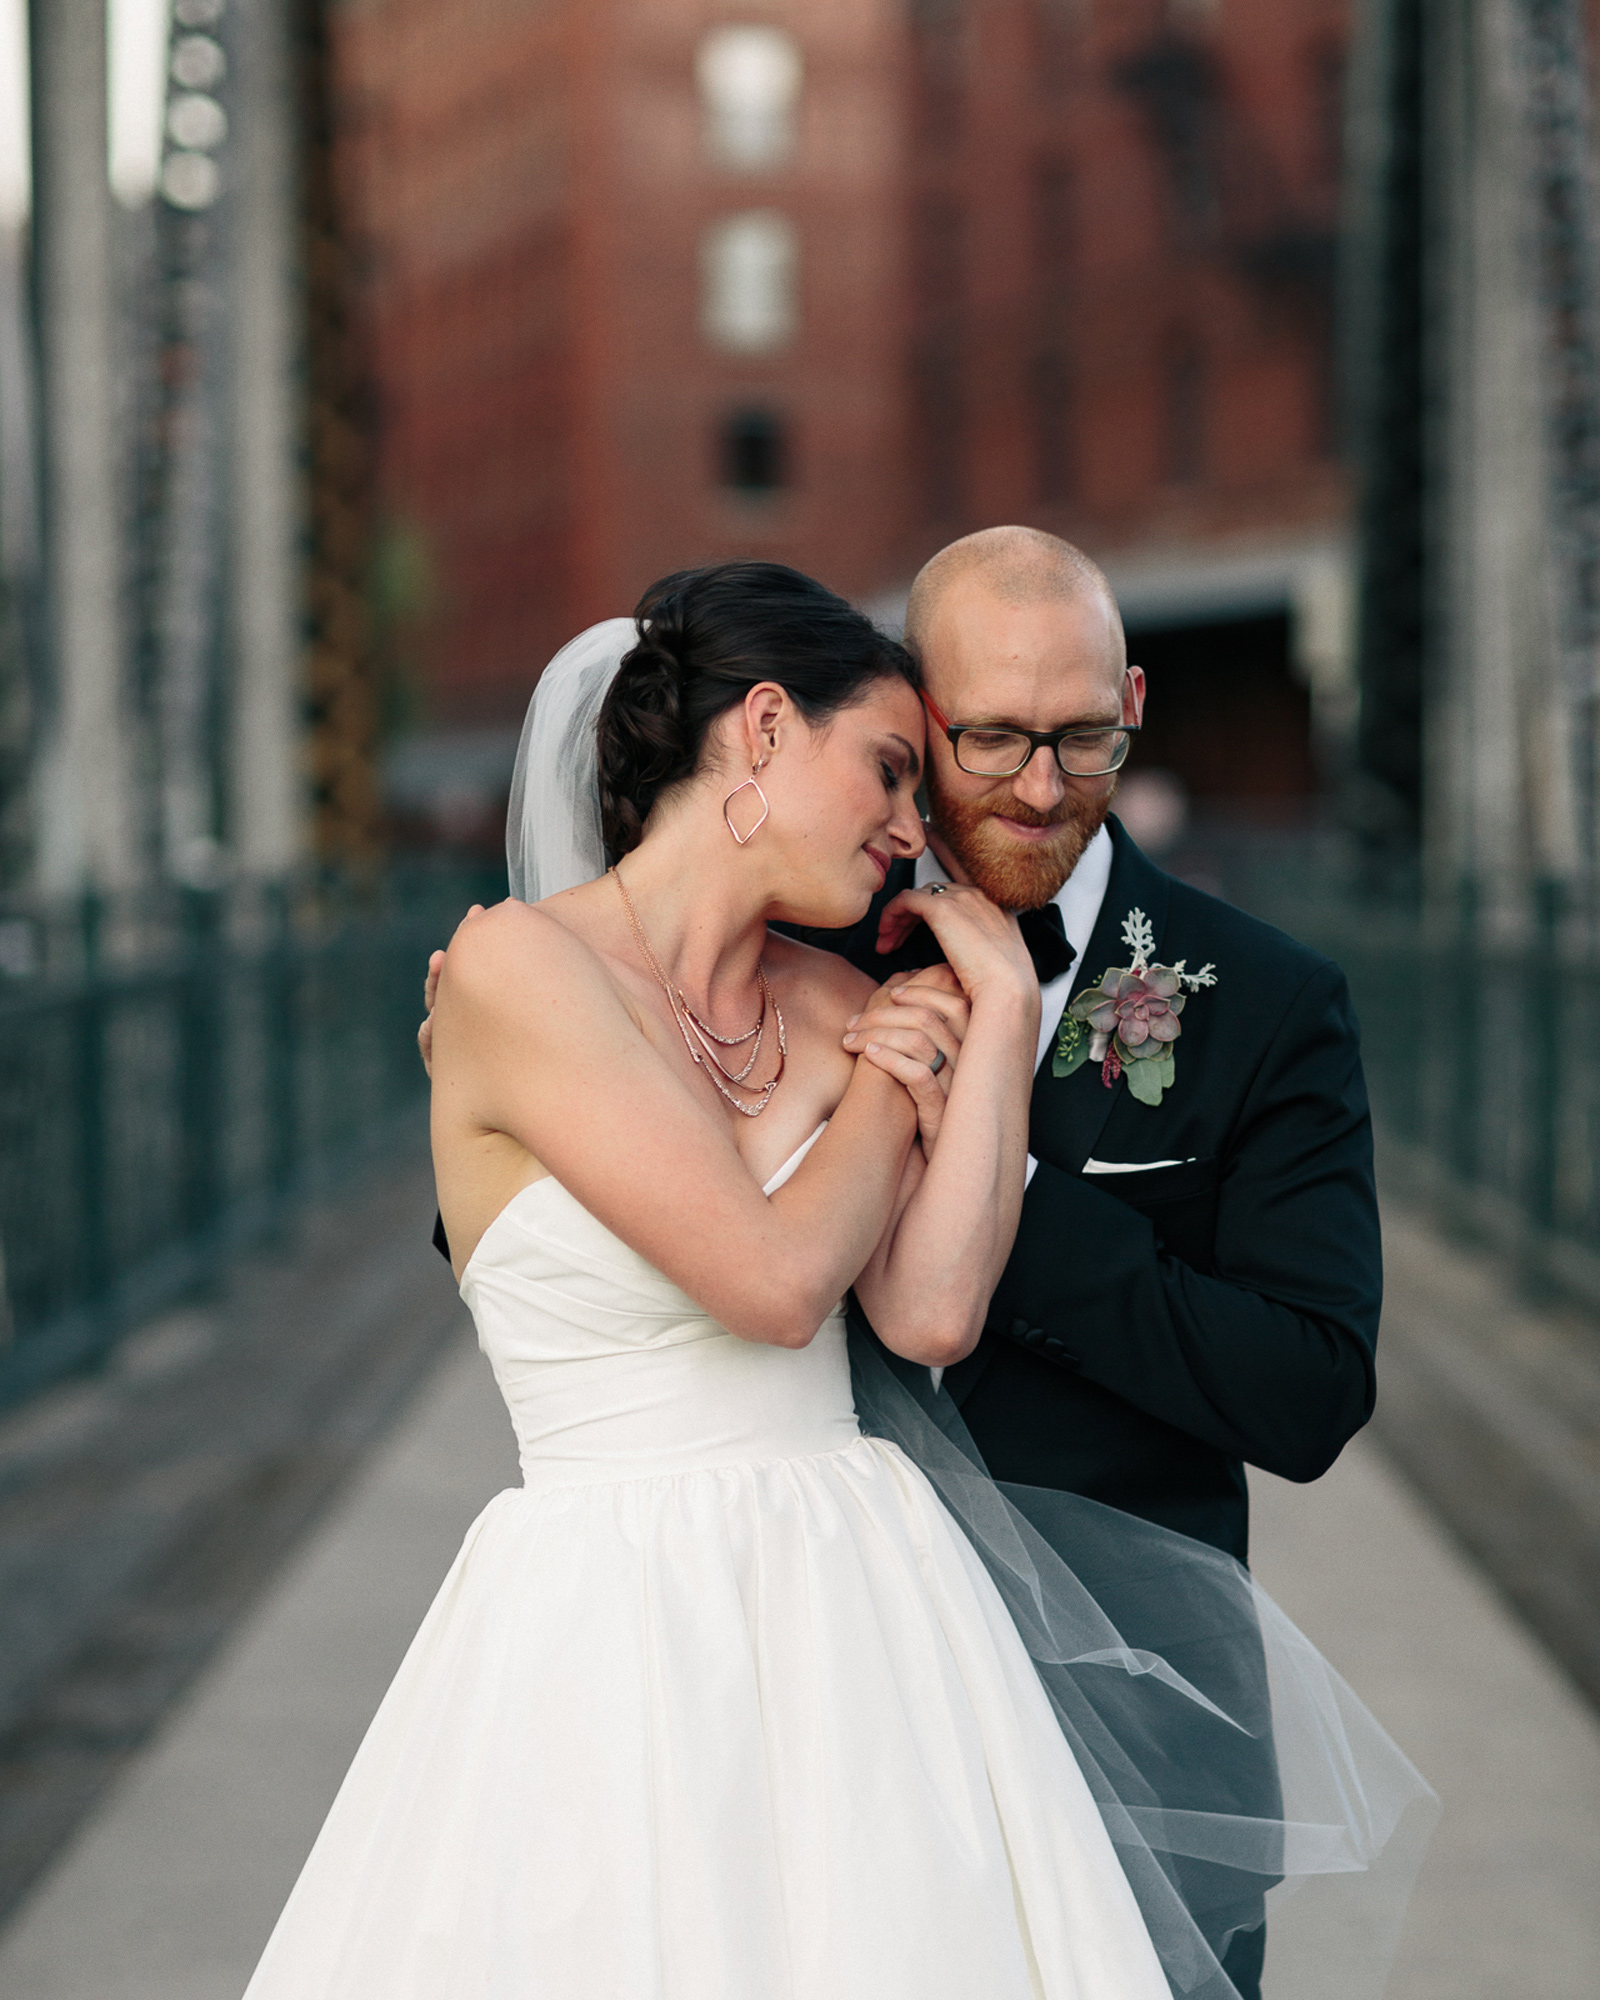 Coo-Hills-Wedding-Photographer-Downtown-Denver-Rebecc-and-Aaron-36.jpg